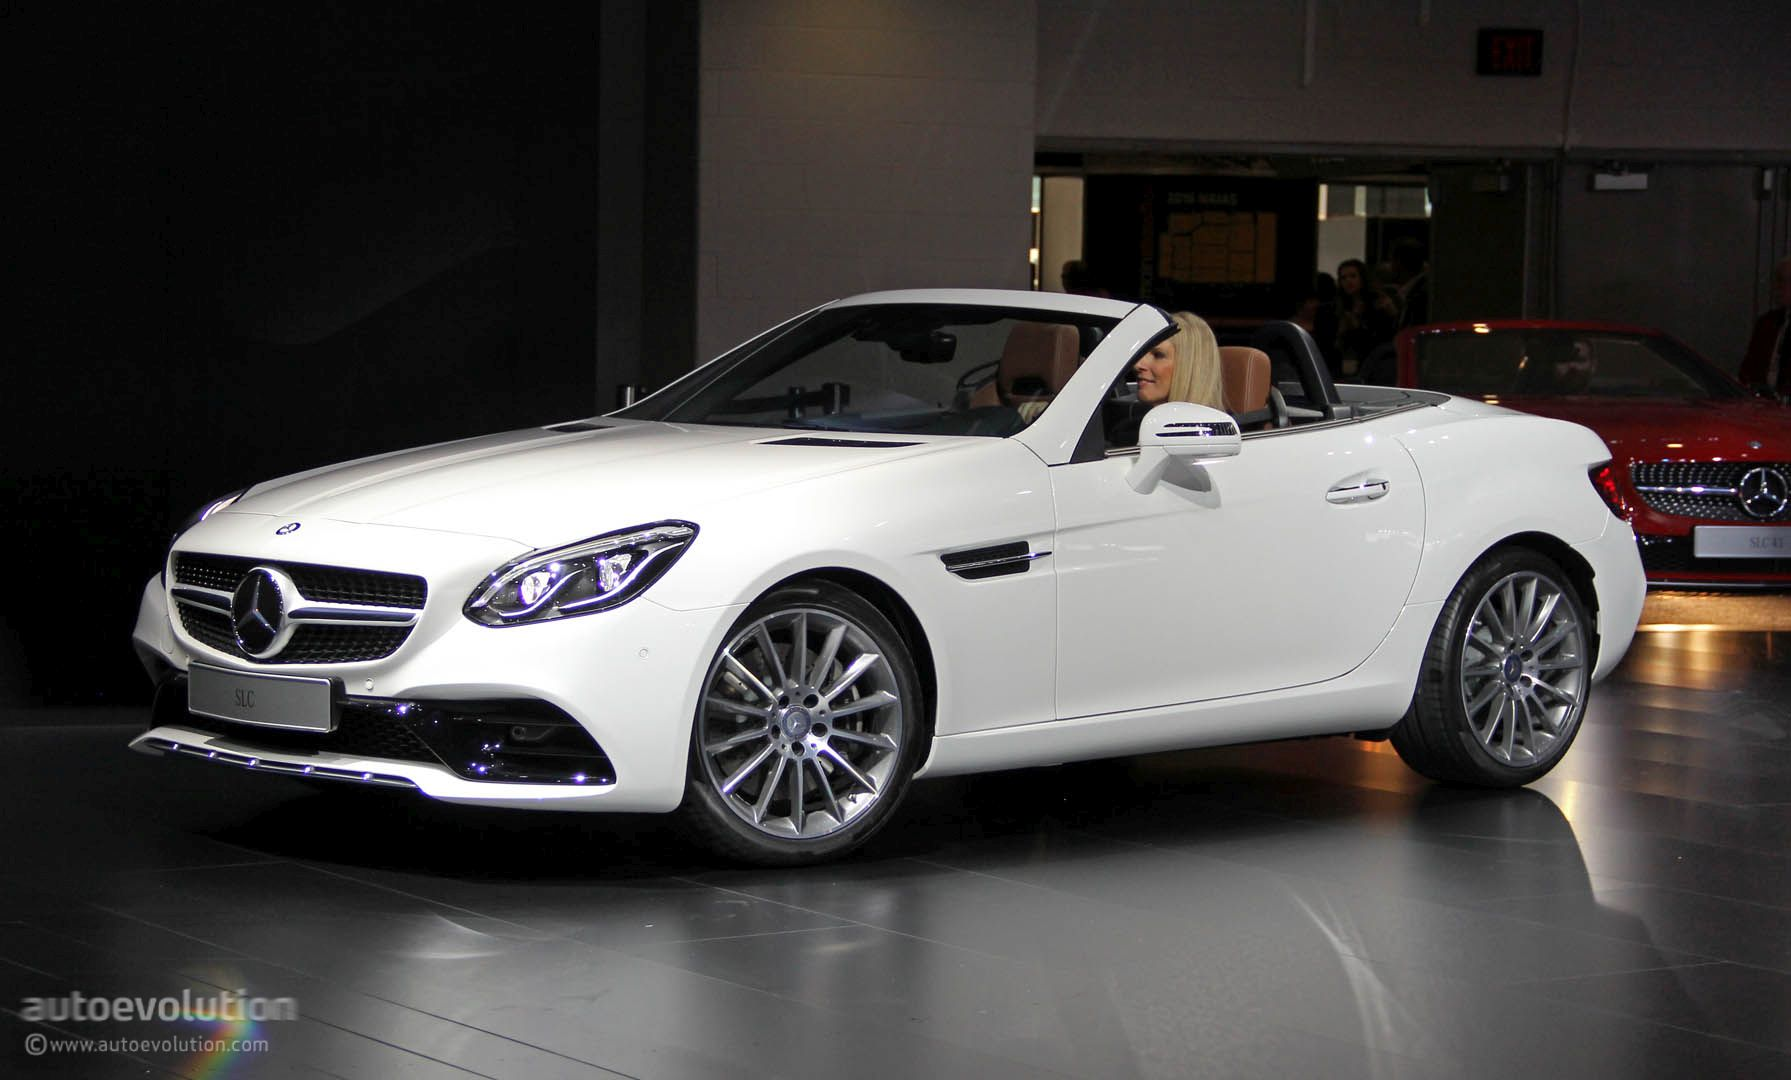 2019 Mercedes Amg Slc 43 Adds More Standard Equipment Has